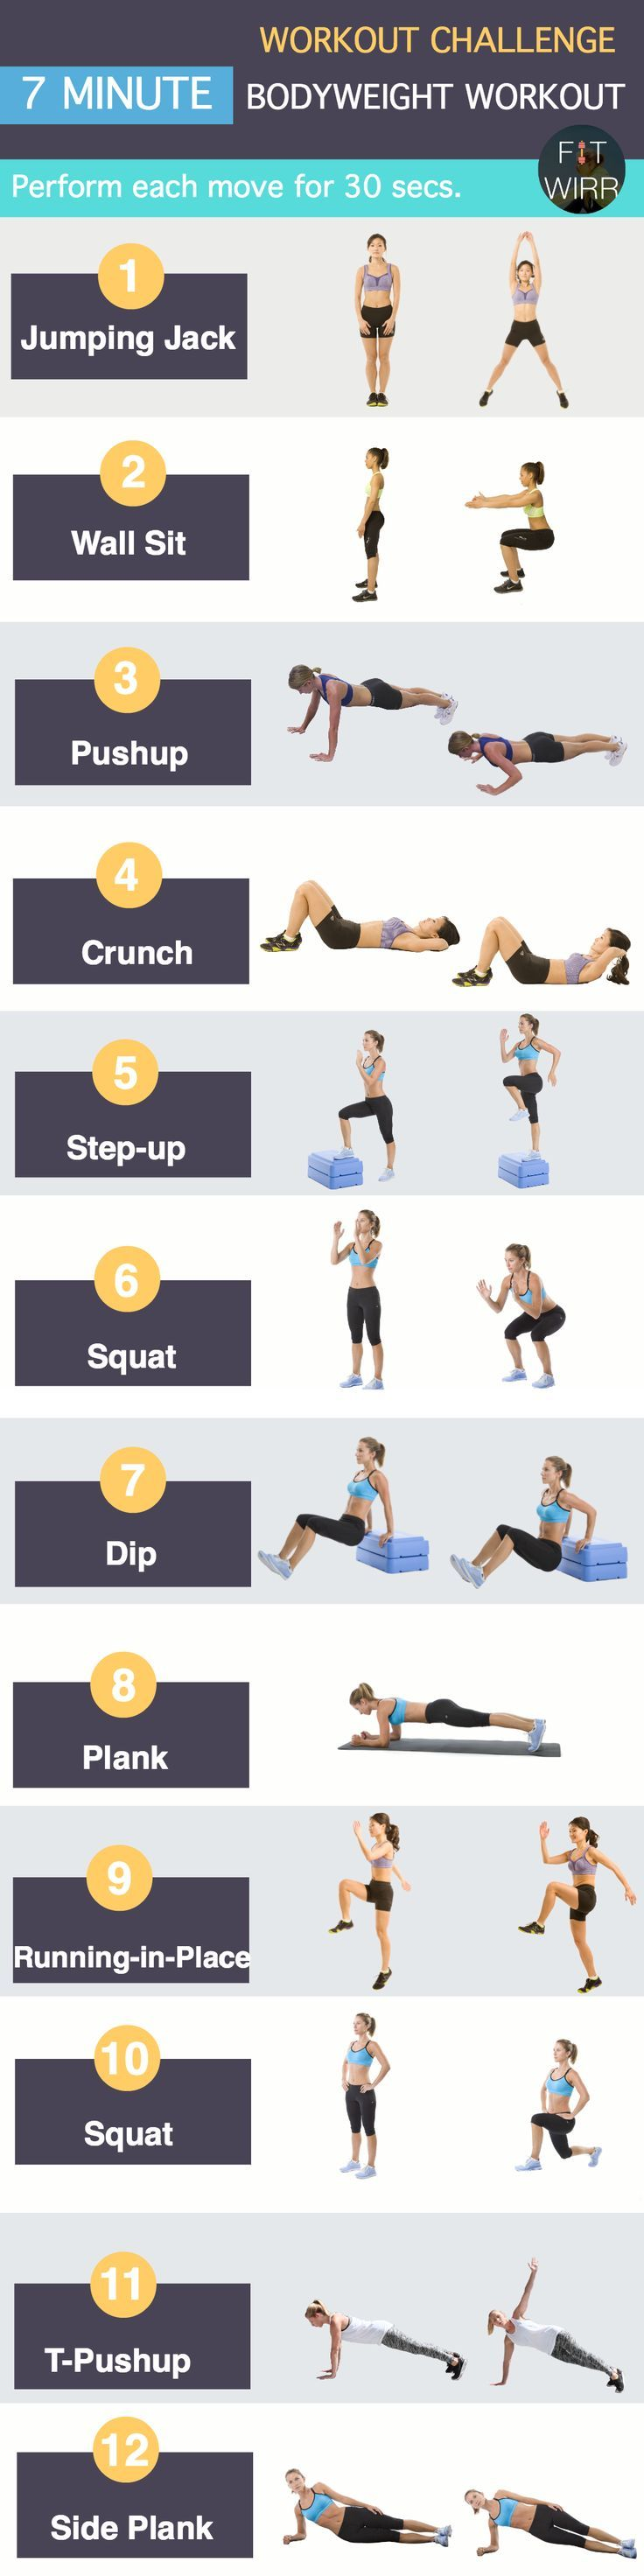 7 MINUTE BodyWeight HIIT Workout Routine... IS ALL U NEED... To BURN Calories.. During + AFTER your Workout... VS 20-30 minutes to workout